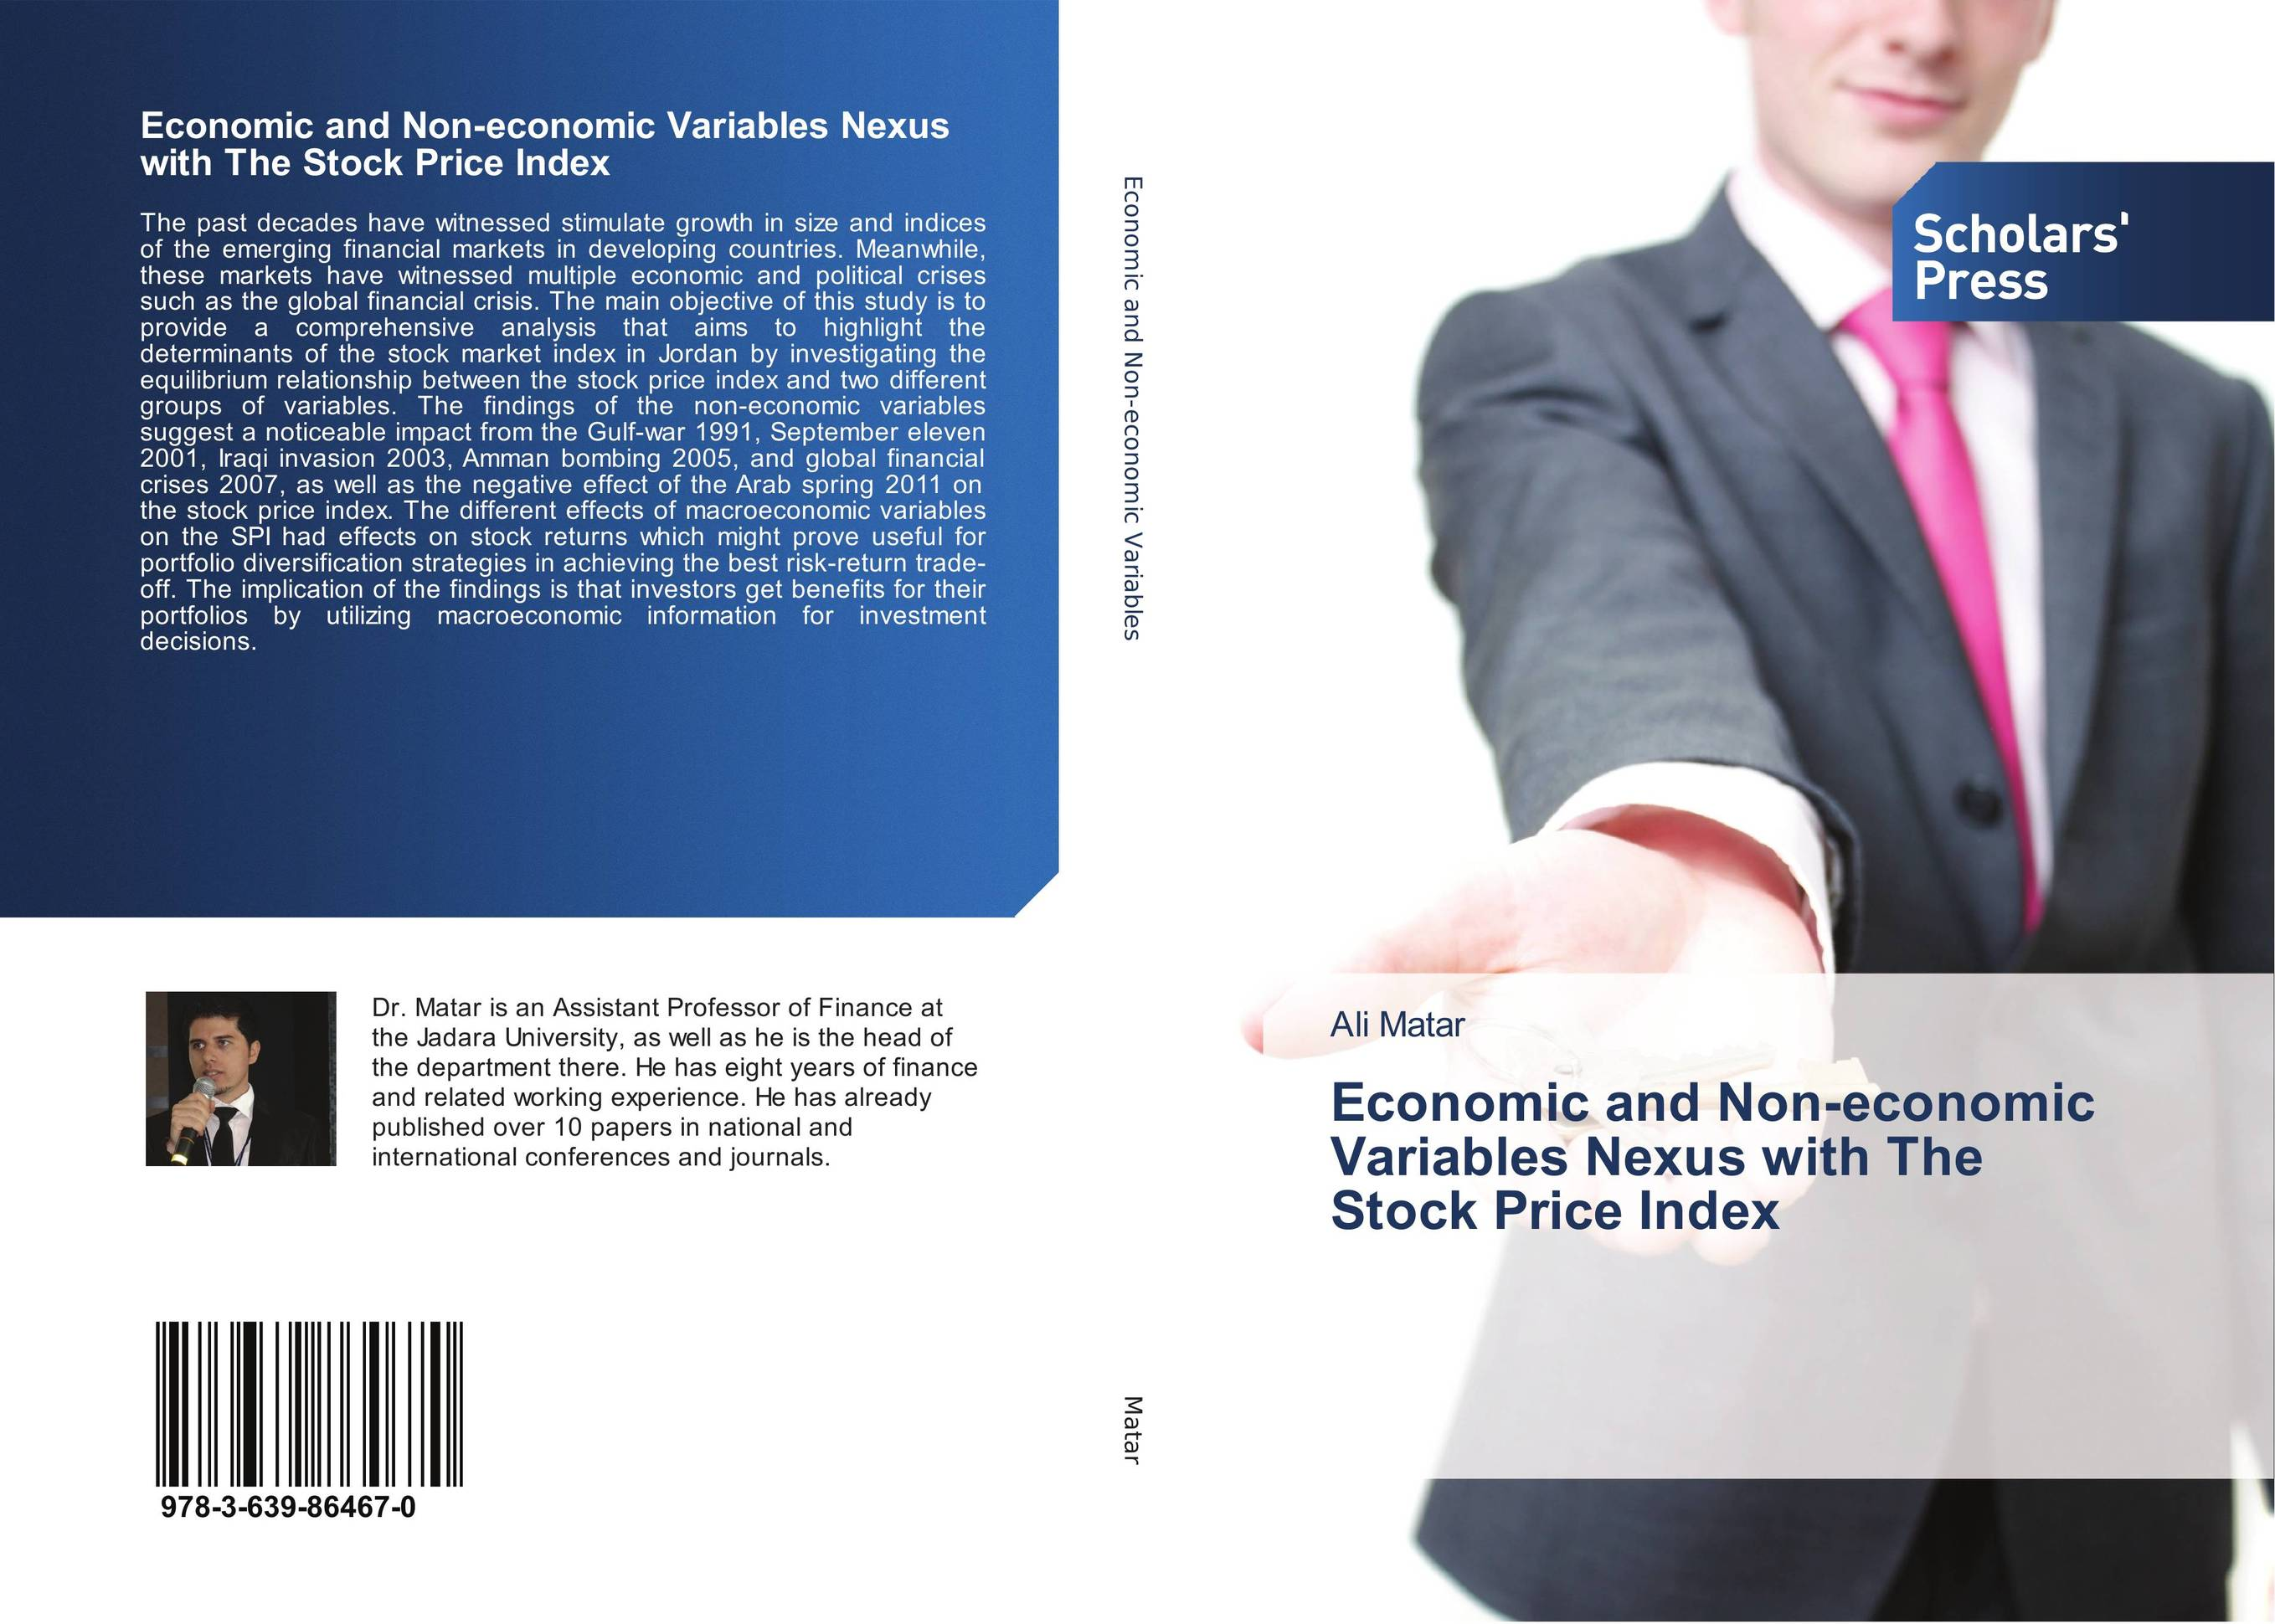 Economic and Non-economic Variables Nexus with The Stock Price Index